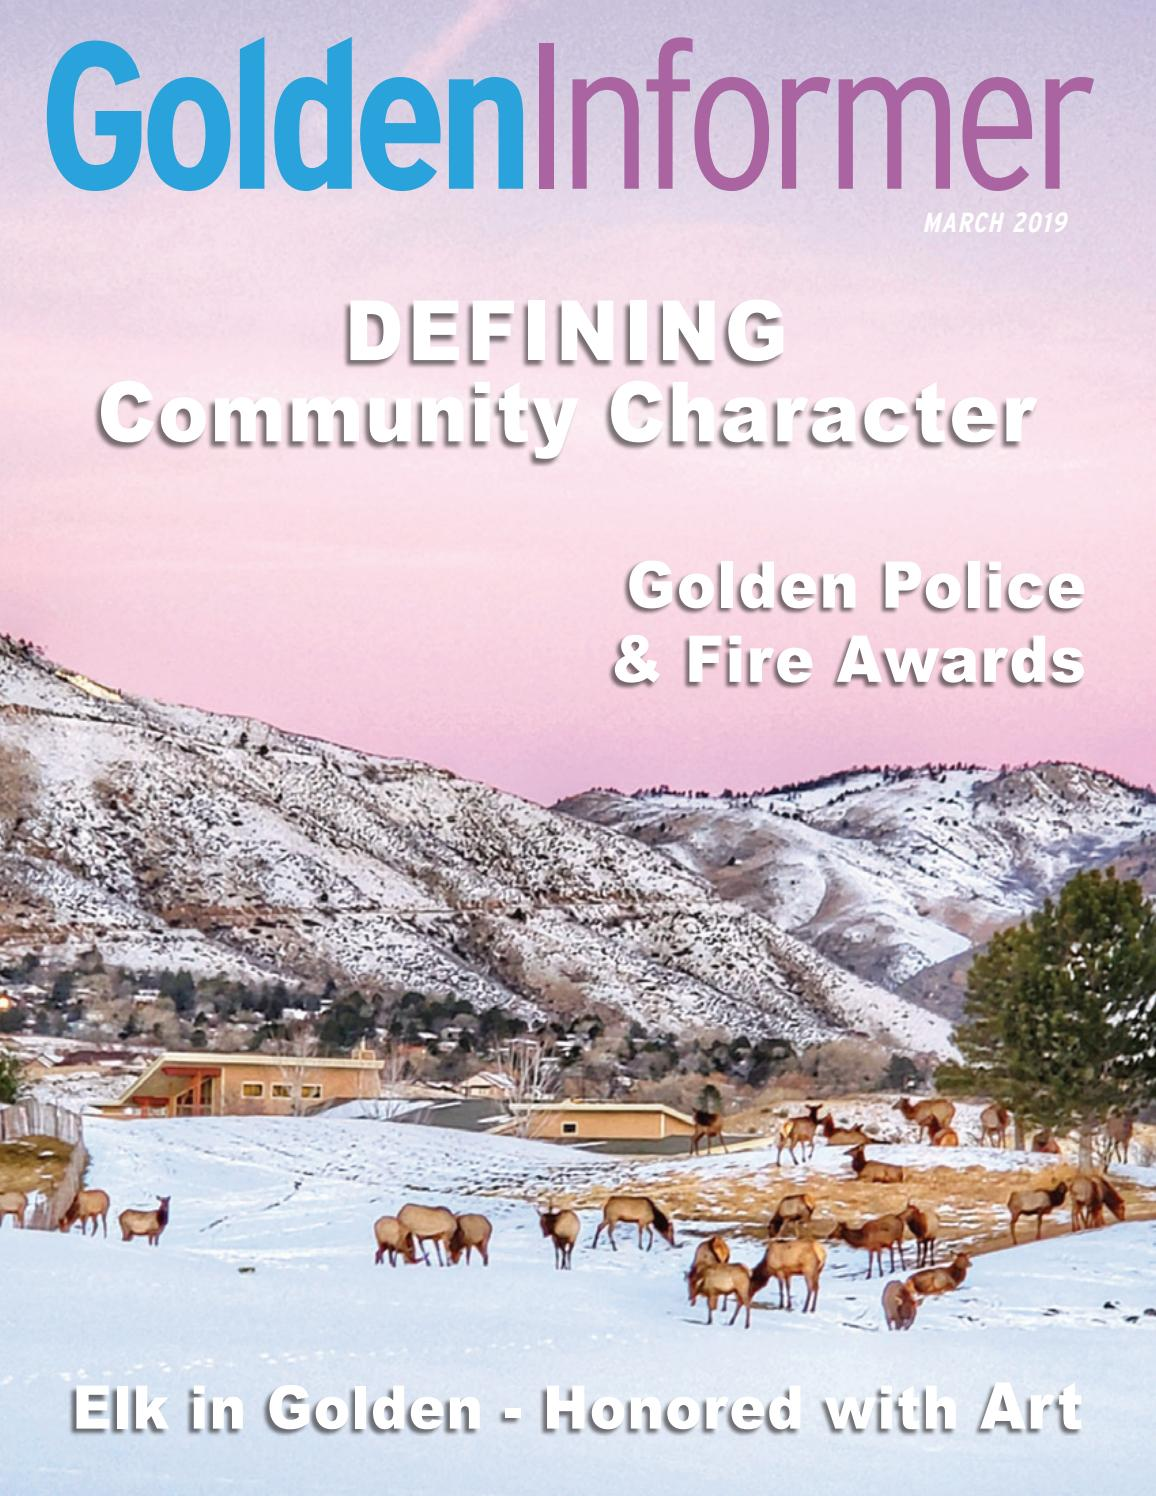 Golden Informer - March 2019 by City of Golden - issuu